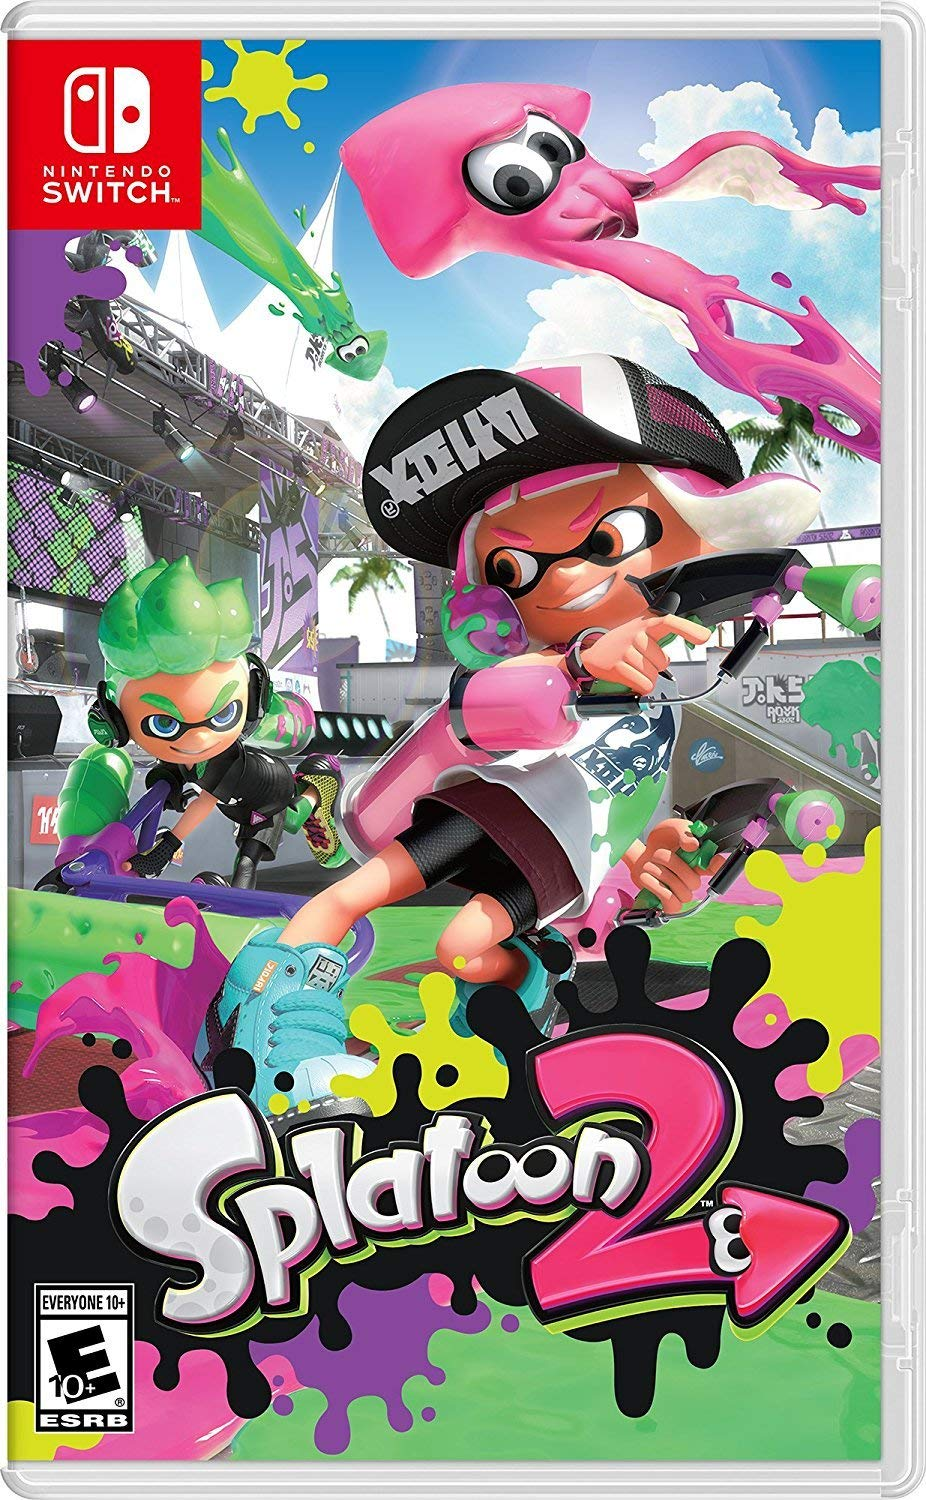 Splatoon 2 for Nintendo Switch [USA]: Amazon.es: Nintendo of America: Cine y Series TV